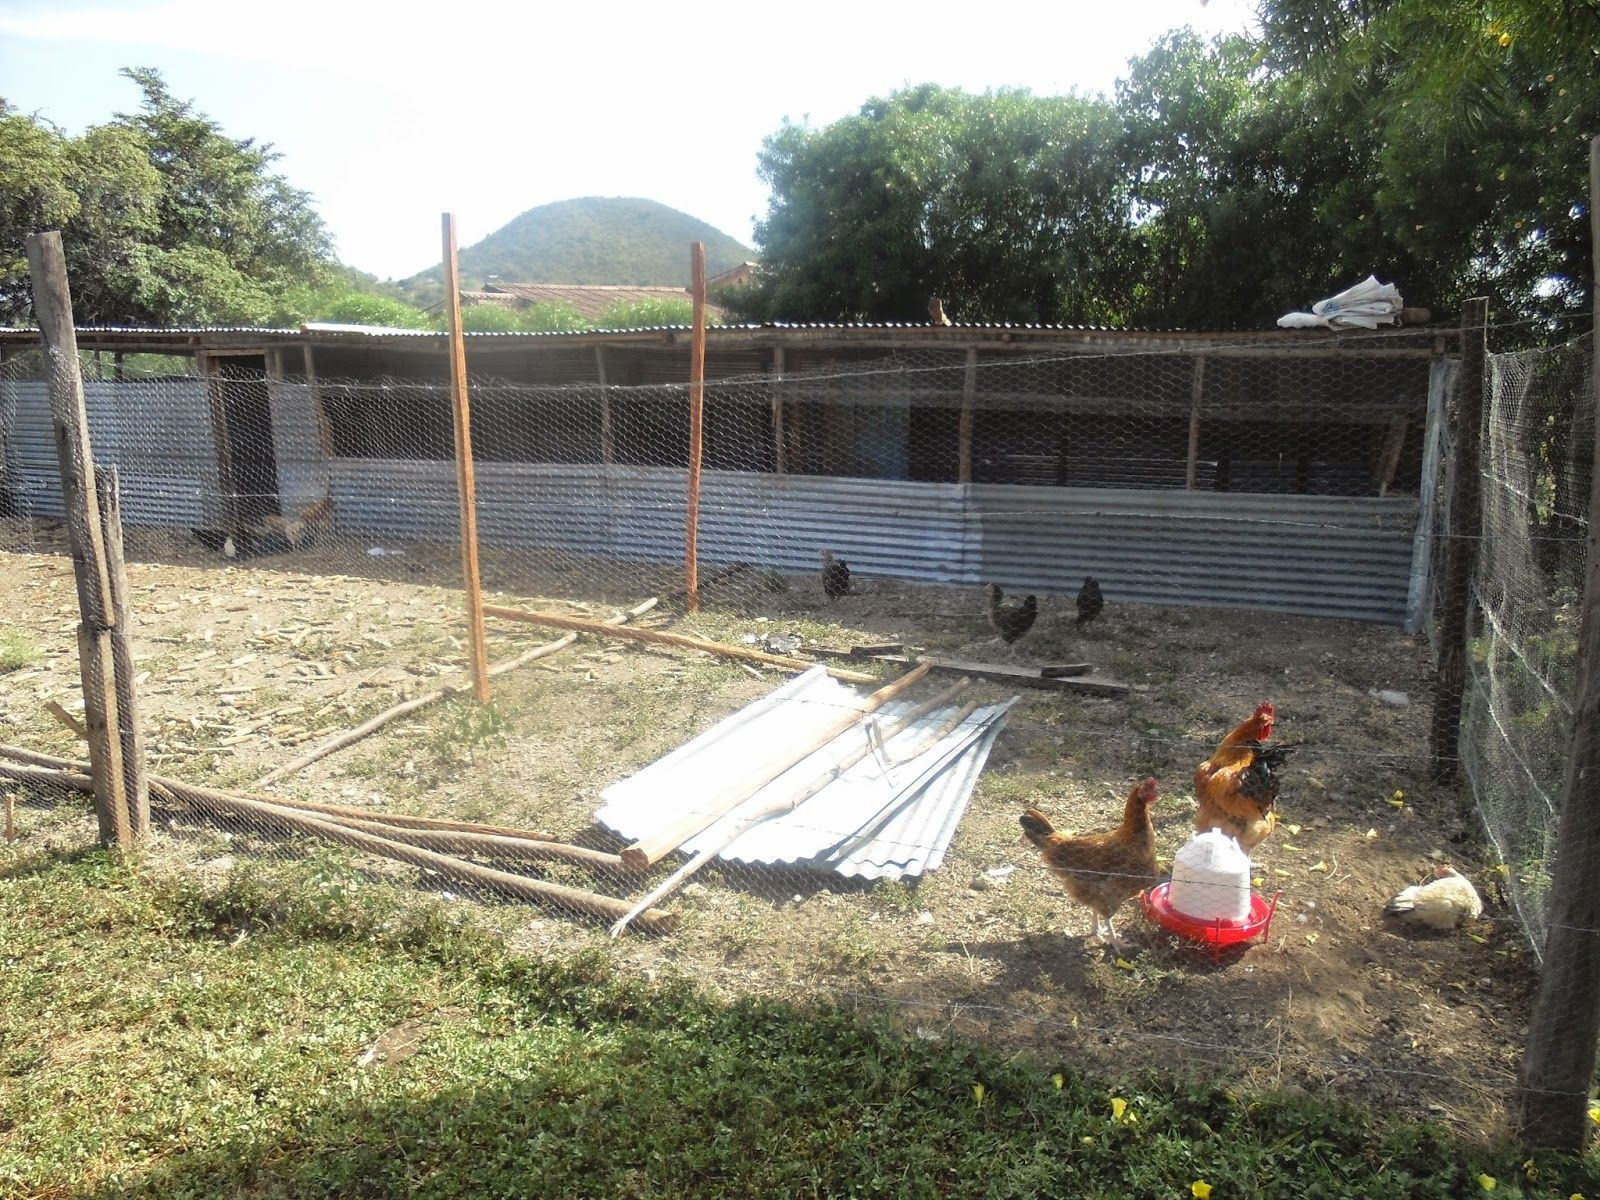 Best Poultry House Plans For 1000 Chickens With Kienyeji Chicken Poultry House Chicken House Garden Ideas Cheap Simple chicken house design for backyard farming